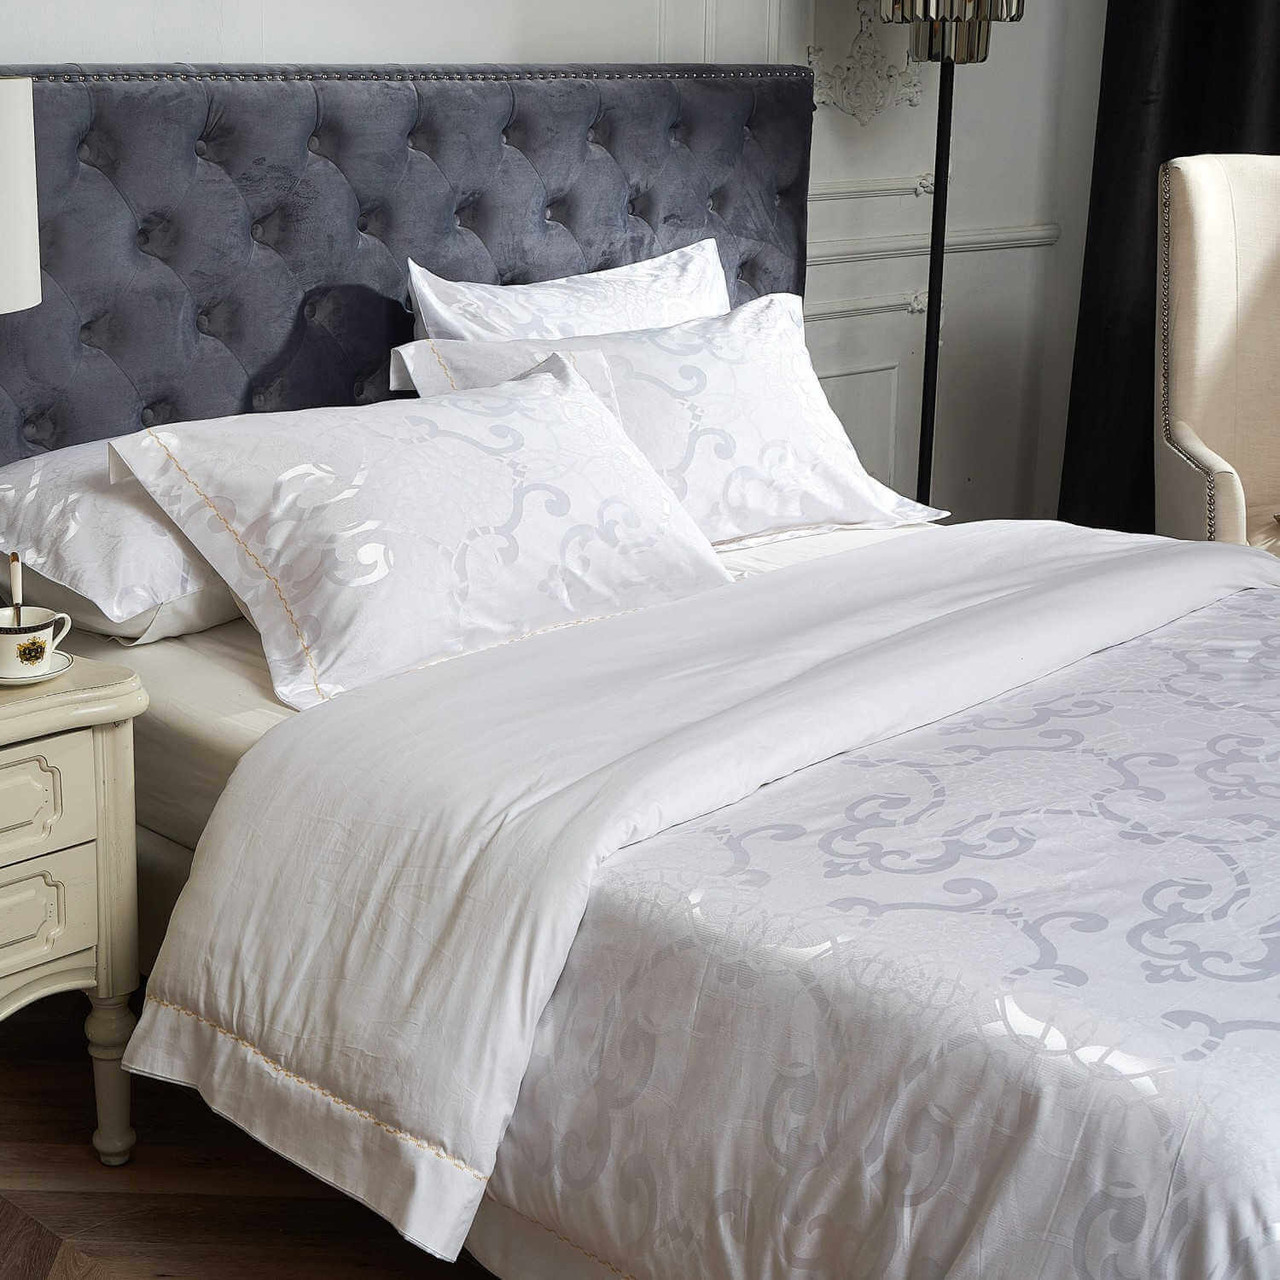 Drop shipping Wholesale Jacquard Material Dolce-Mela Bedding DM806K